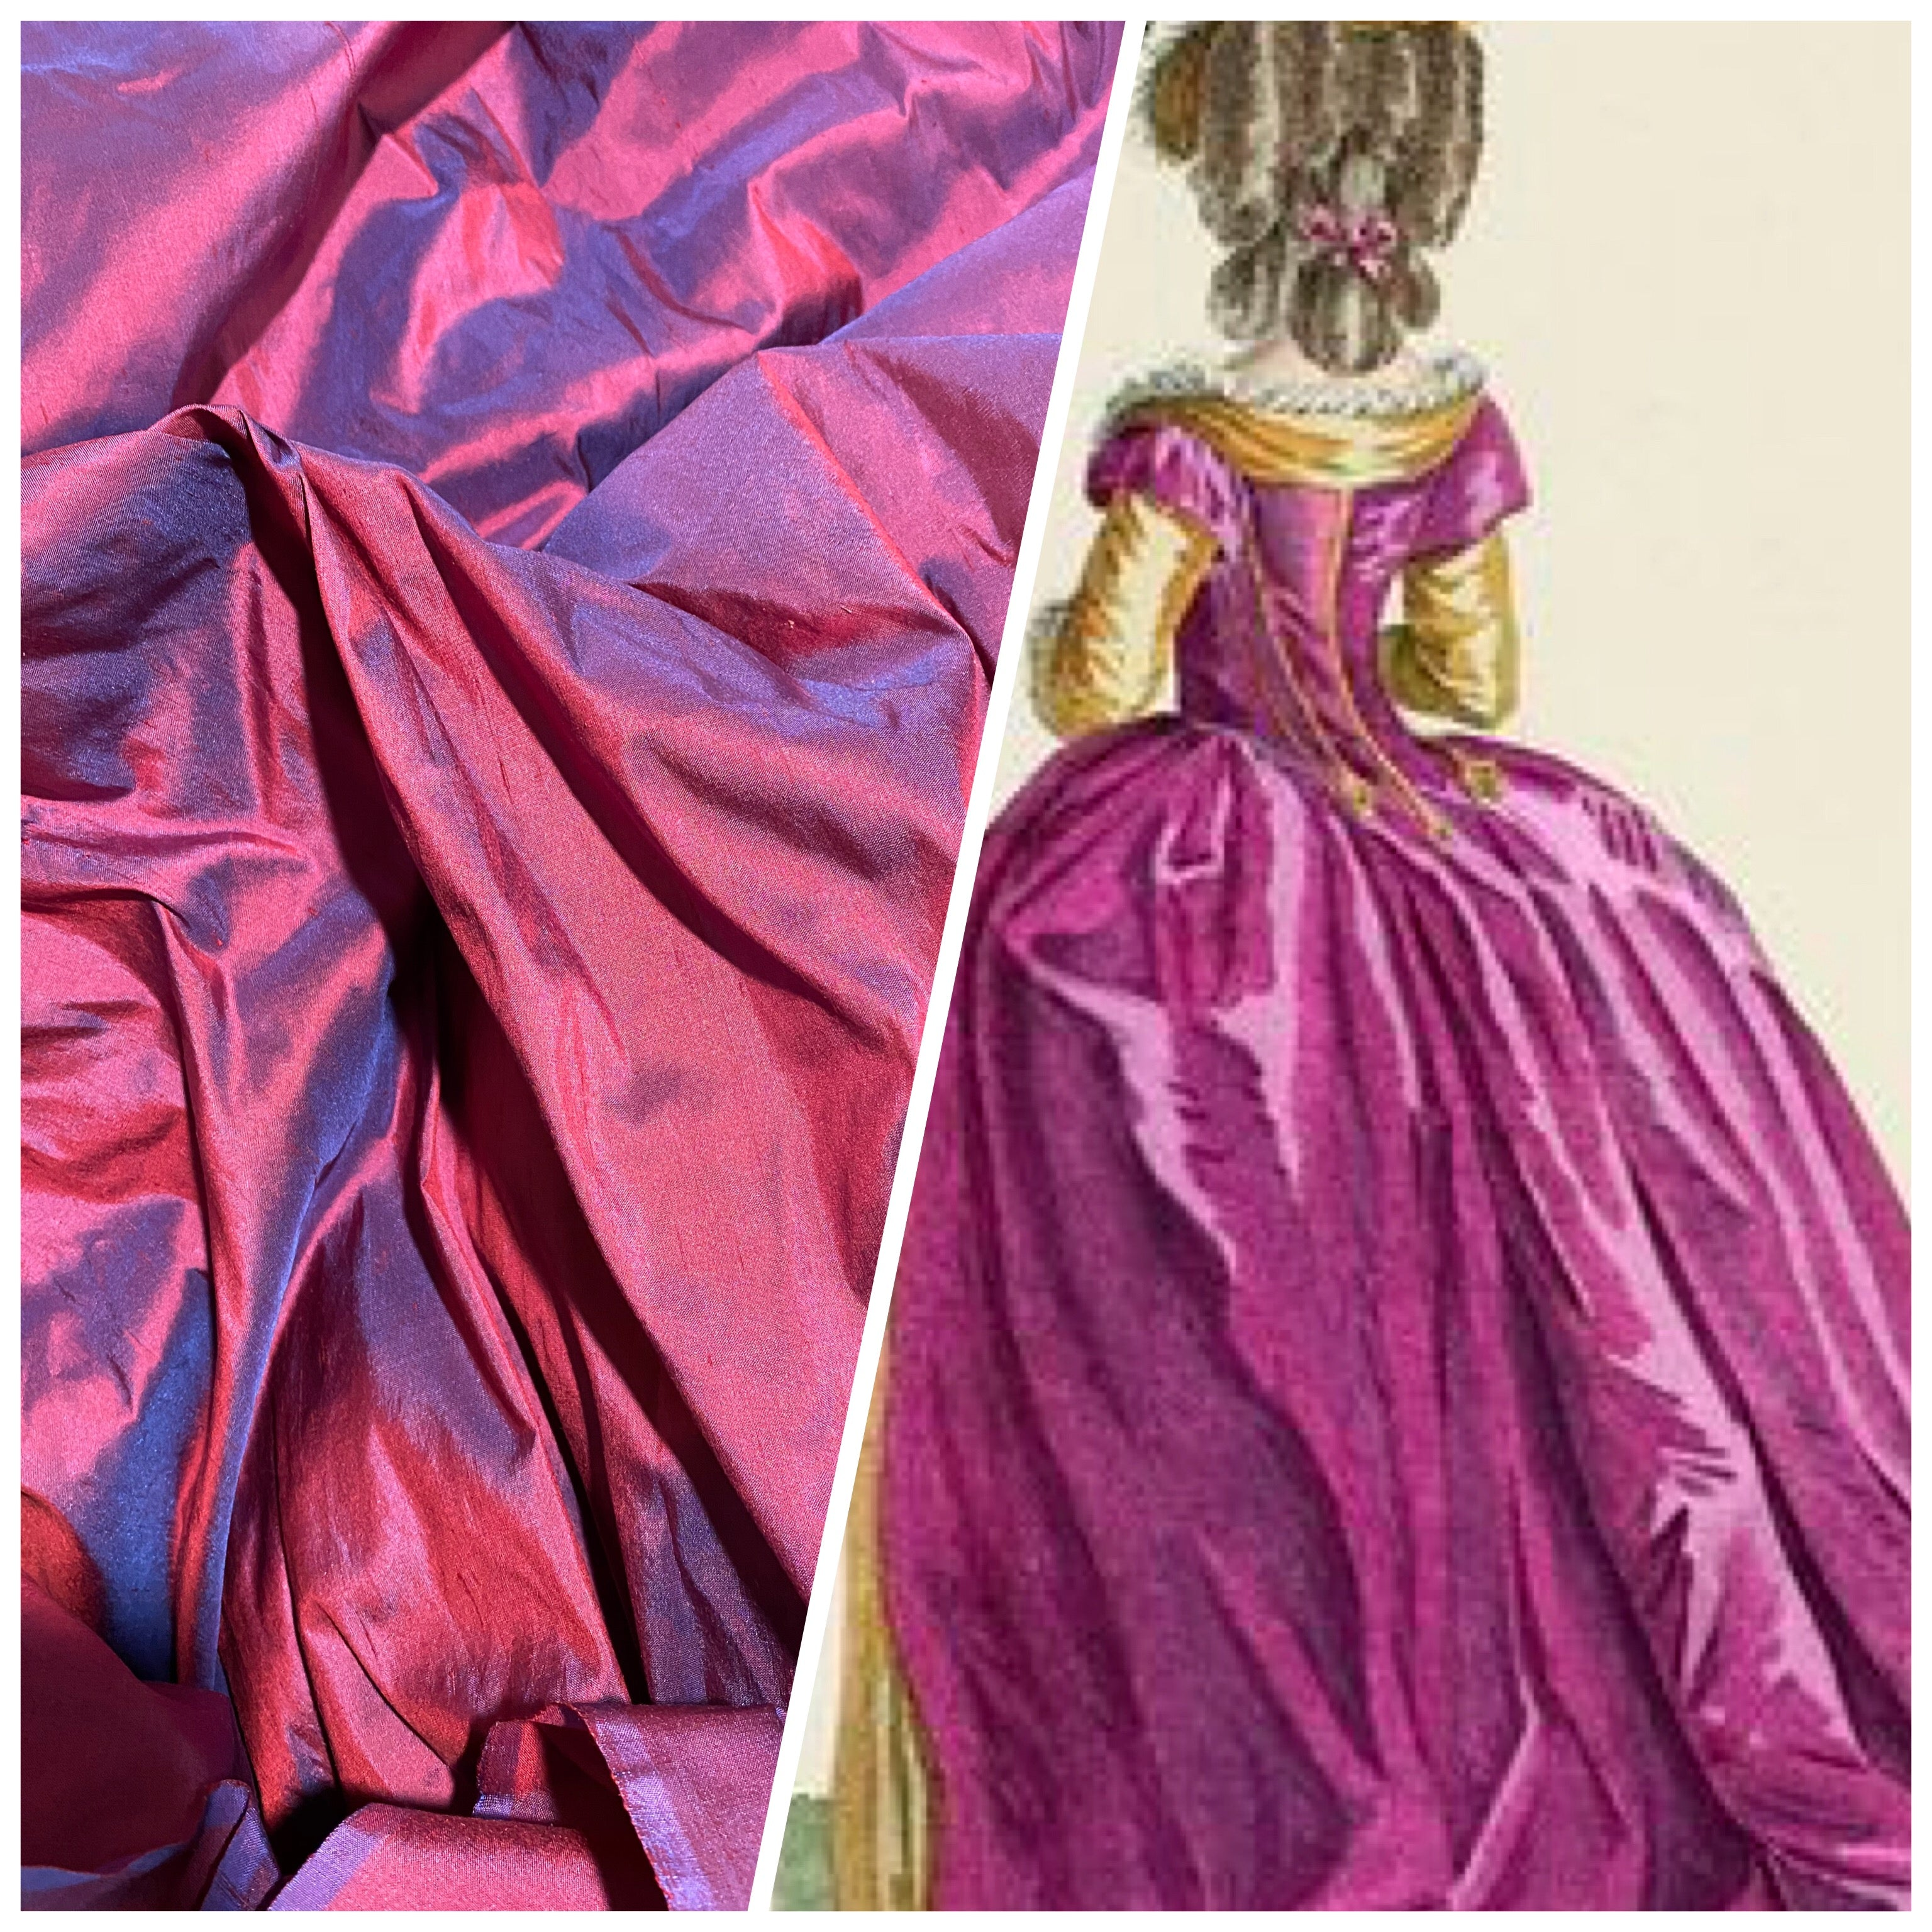 NEW Duchess Mable Designer 100% Silk Dupioni - Magenta with Electric Blue Iridescence